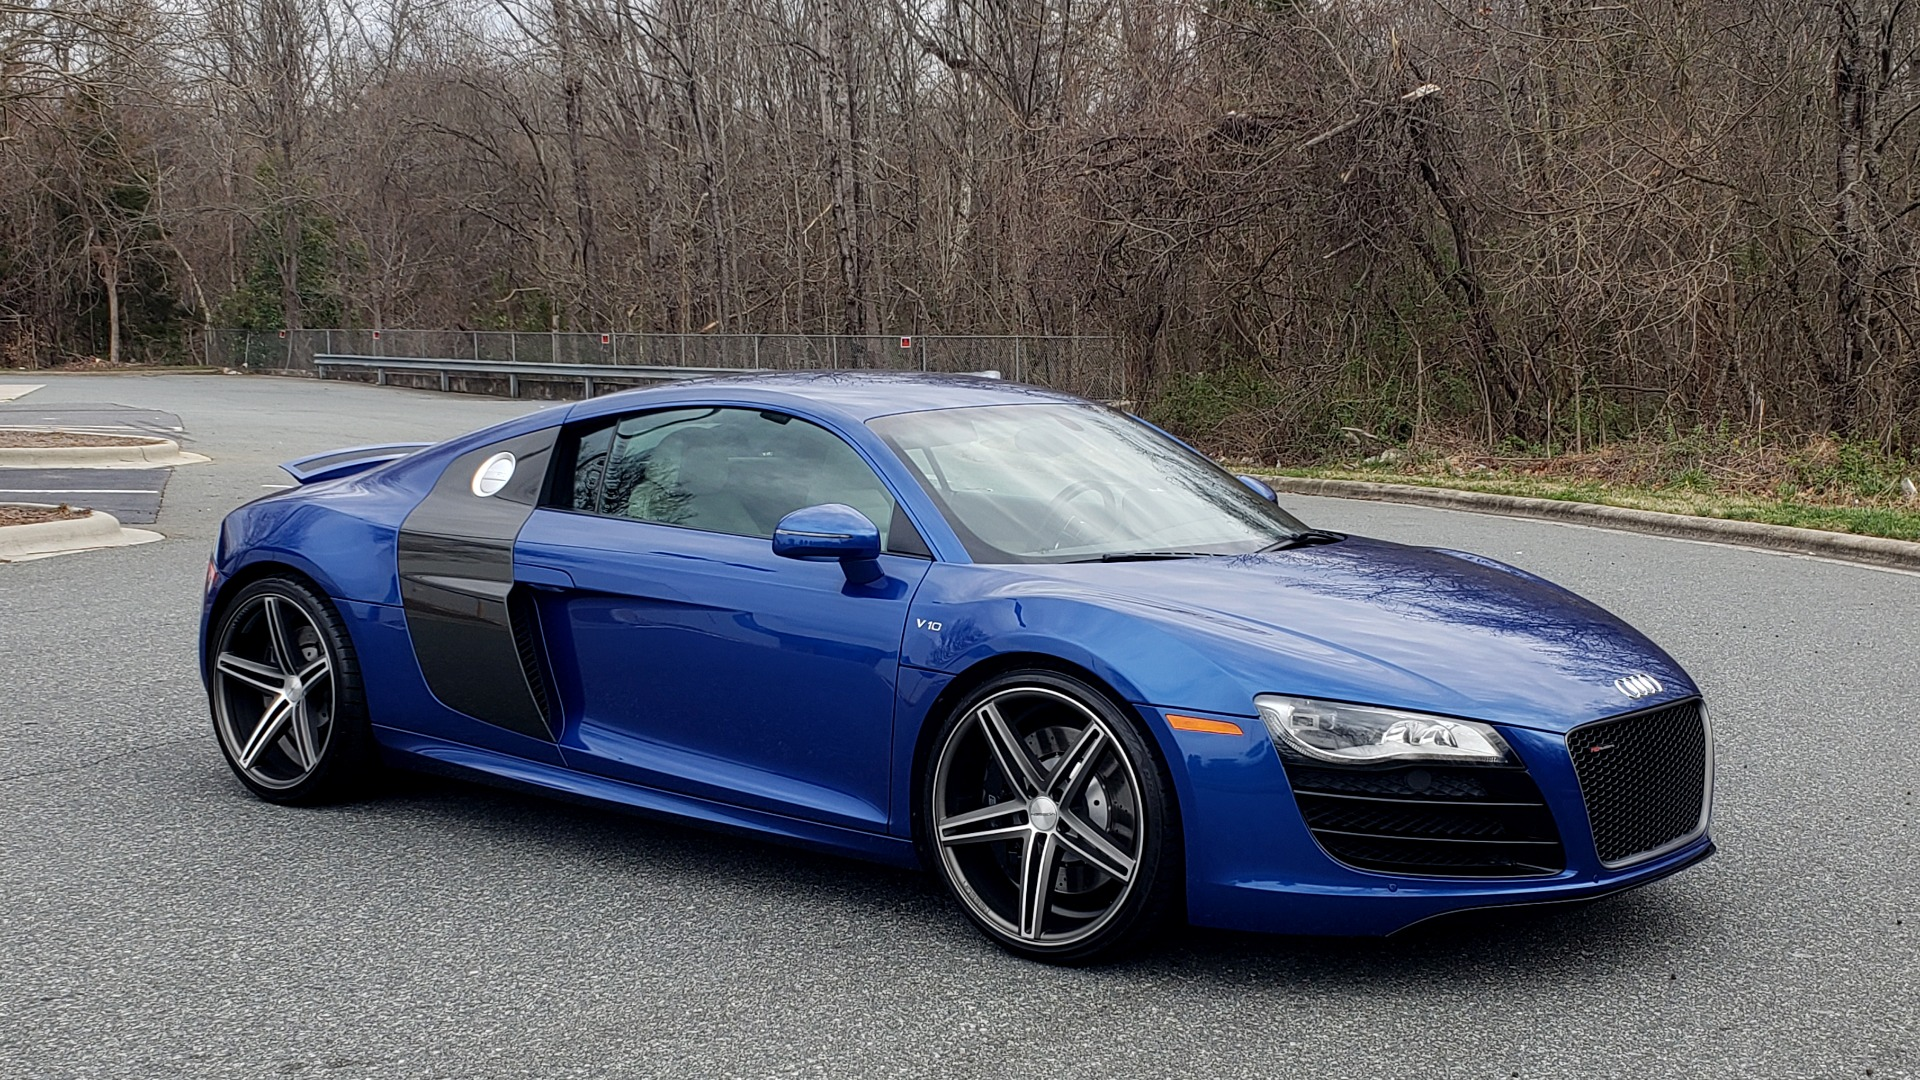 Used 2010 Audi R8 5.2L V10 / AWD / COUPE / NAV / 6-SPD AUTO / CUSTOM WHEELS for sale Sold at Formula Imports in Charlotte NC 28227 6